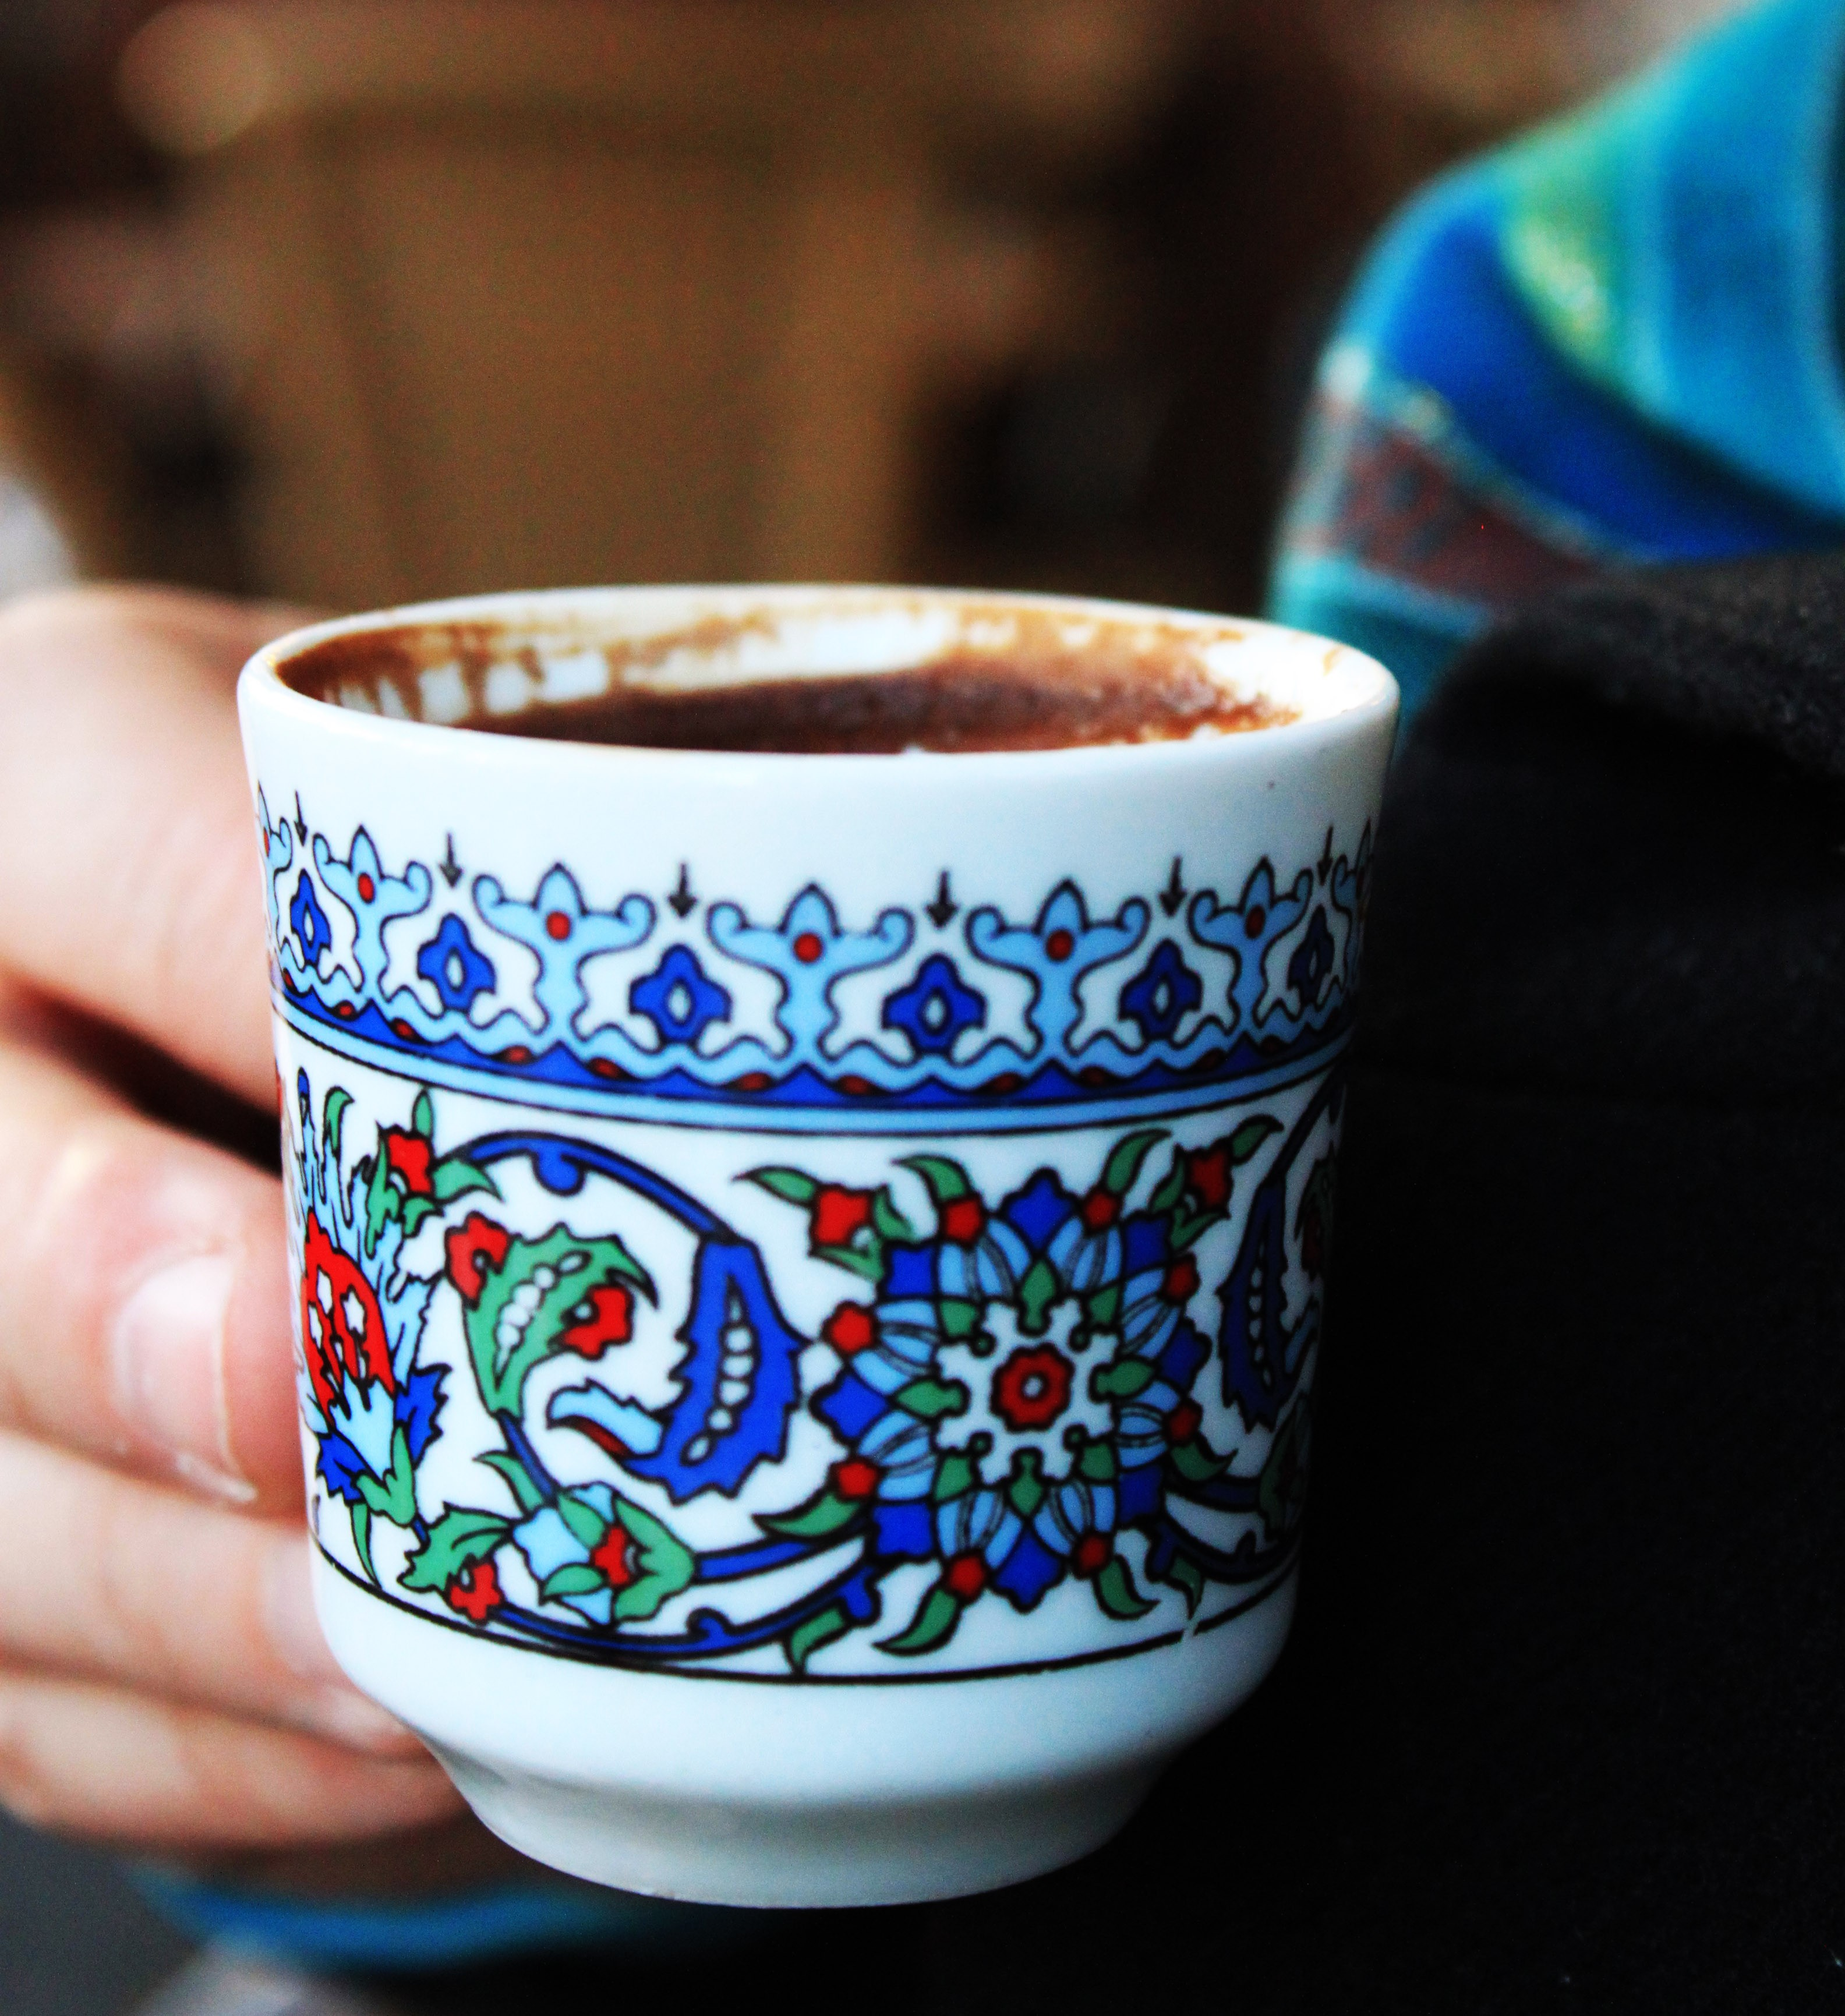 turkish drinks cezve Traditional HD Wallpaper